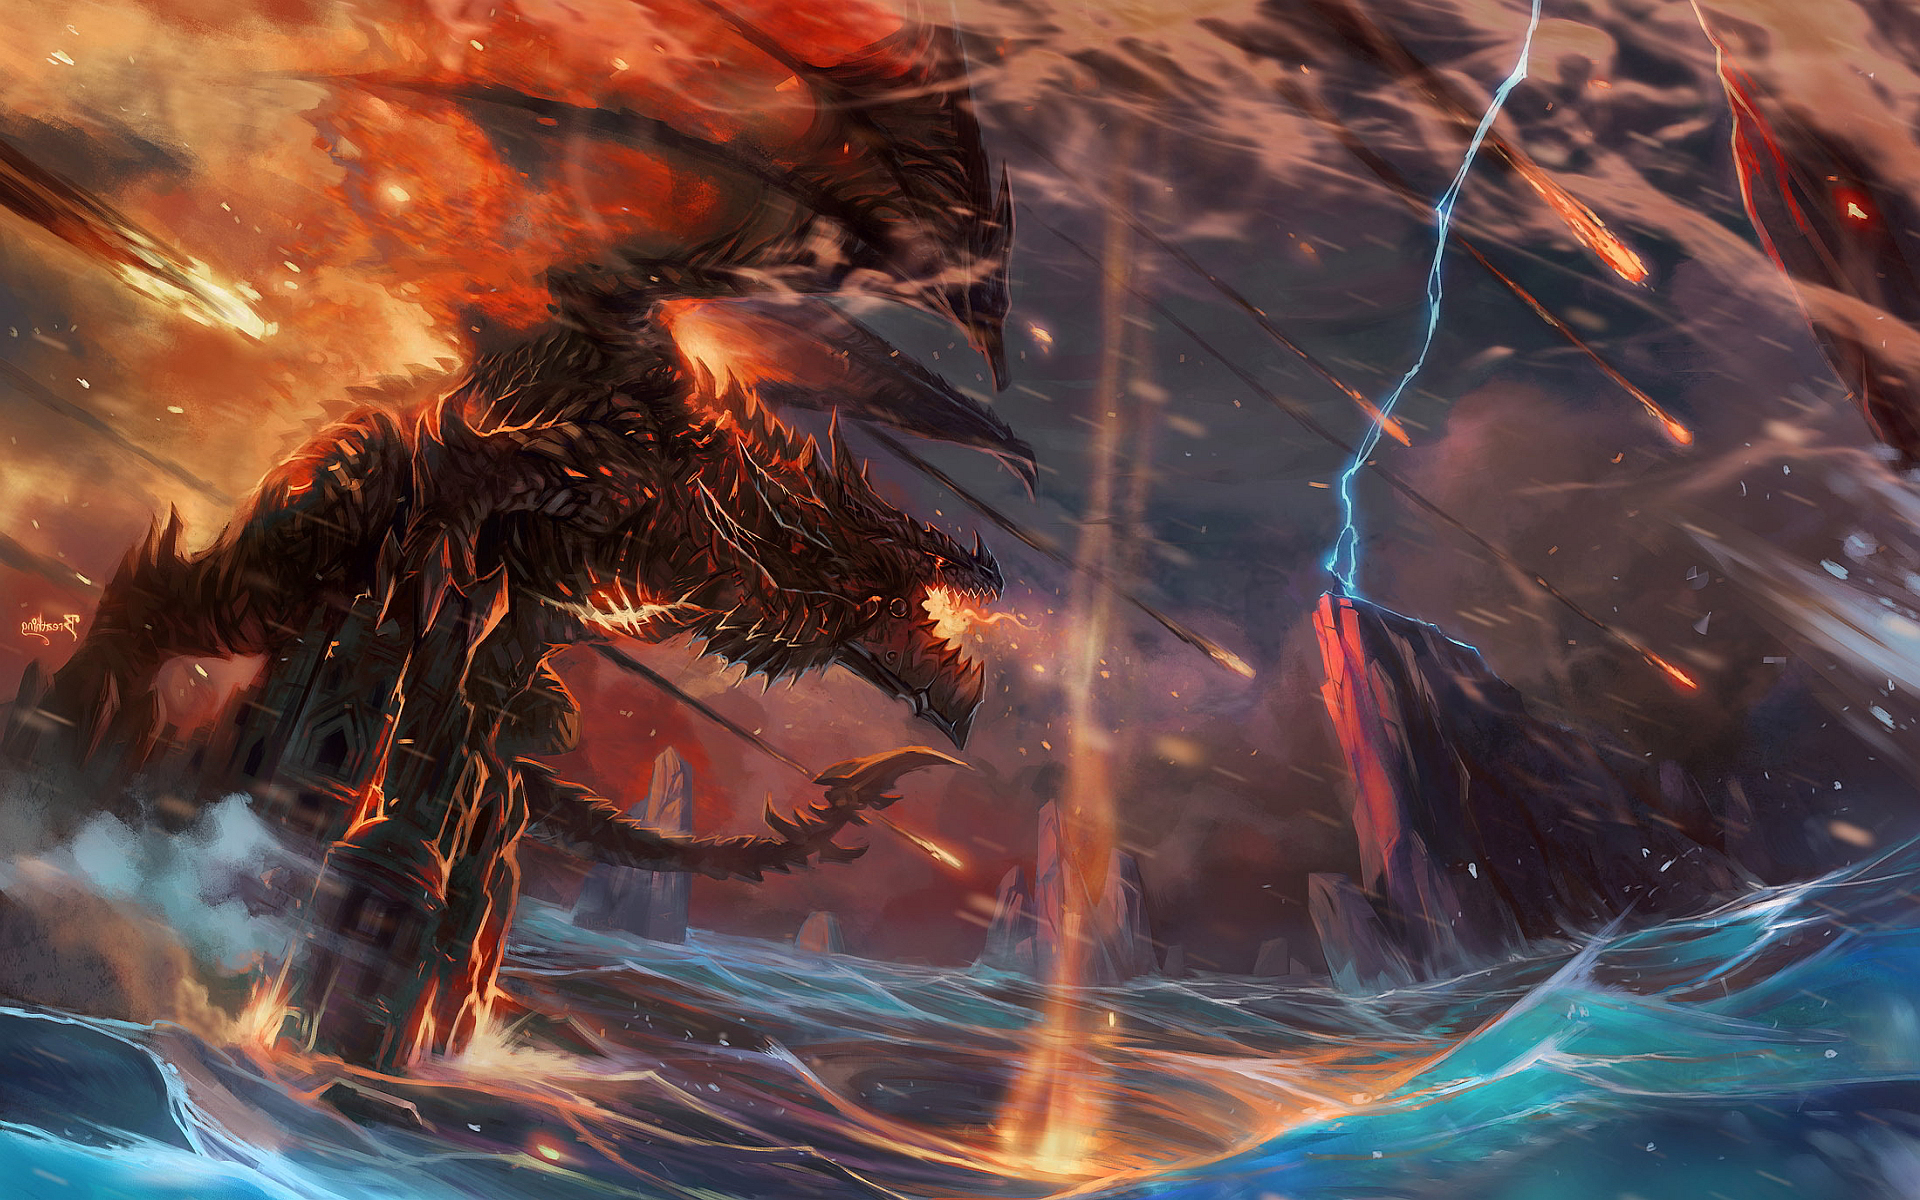 dragon wow art